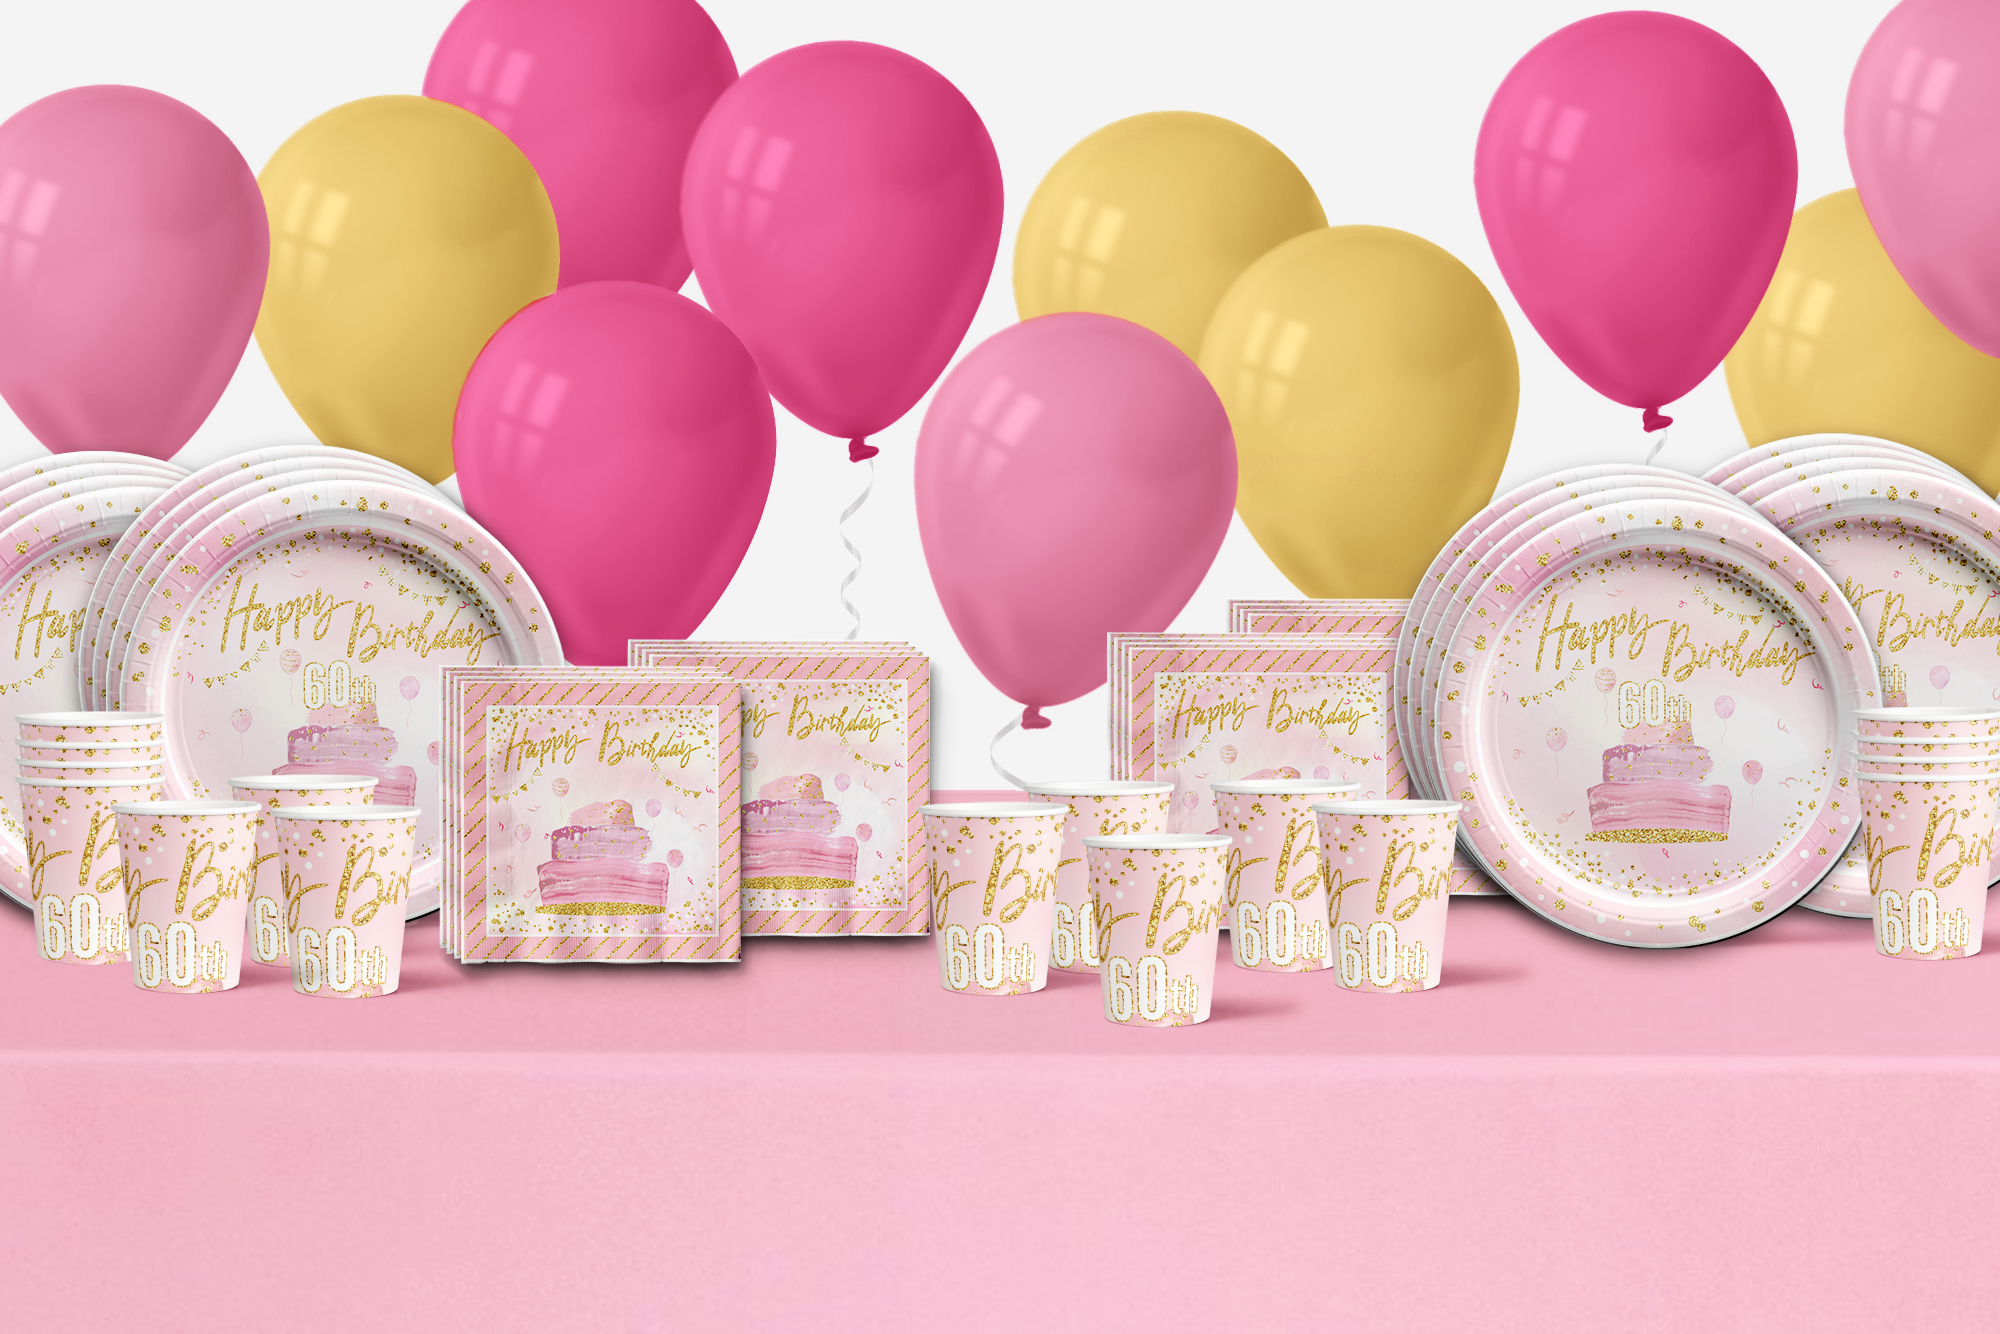 60th Birthday Pink & Gold Party Tableware Kit For 16 Guests - BirthdayGalore.com